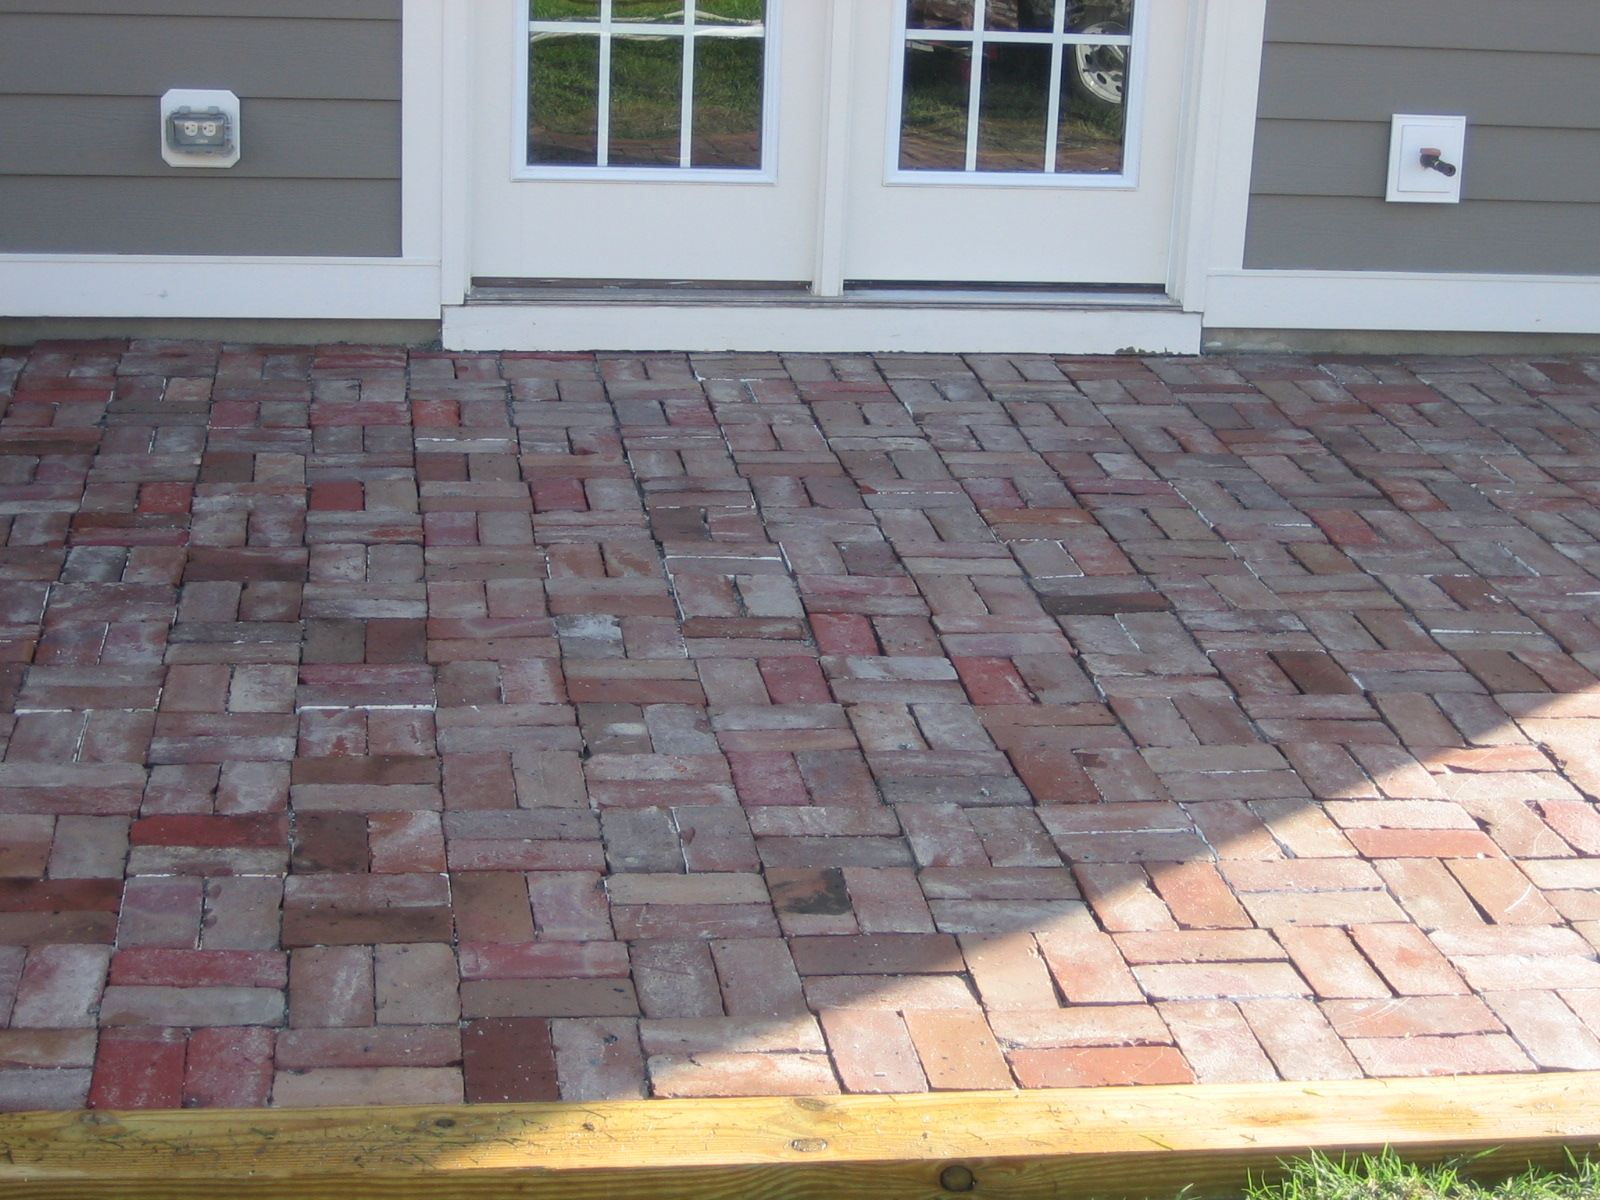 ideas backyard patio pavers brick.html with Goodbye Concrete Hello Reclaimed Brick on Photos Of Mortar Washed Brick also Goodbye Concrete Hello Reclaimed Brick further 91479436154679965 as well